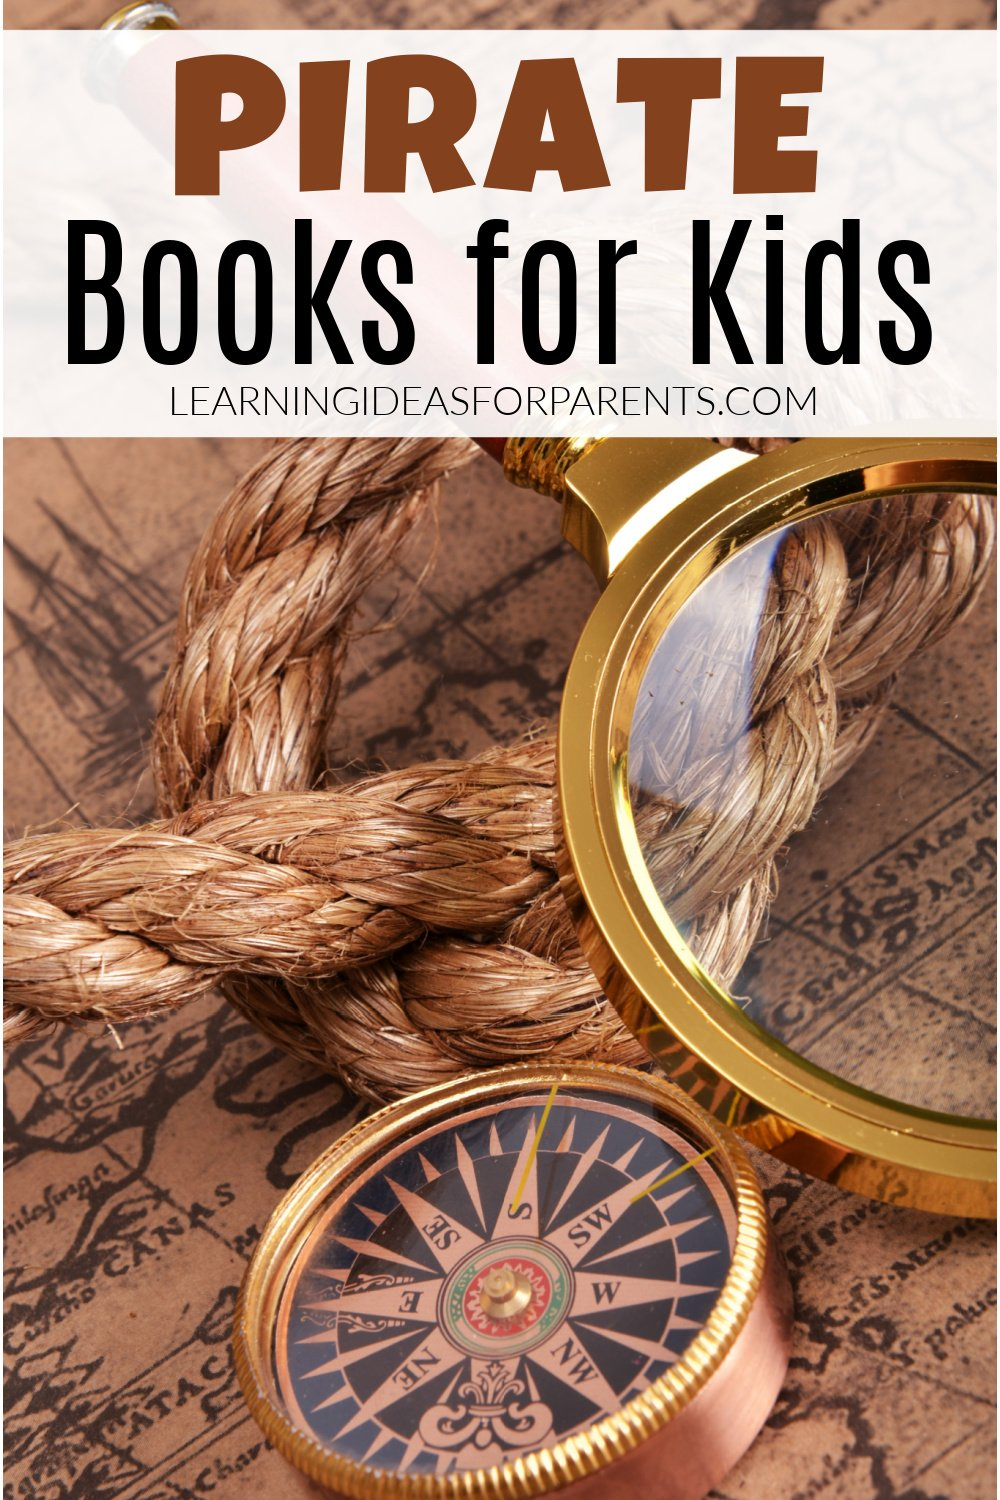 Fun pirate books for kids of all ages.